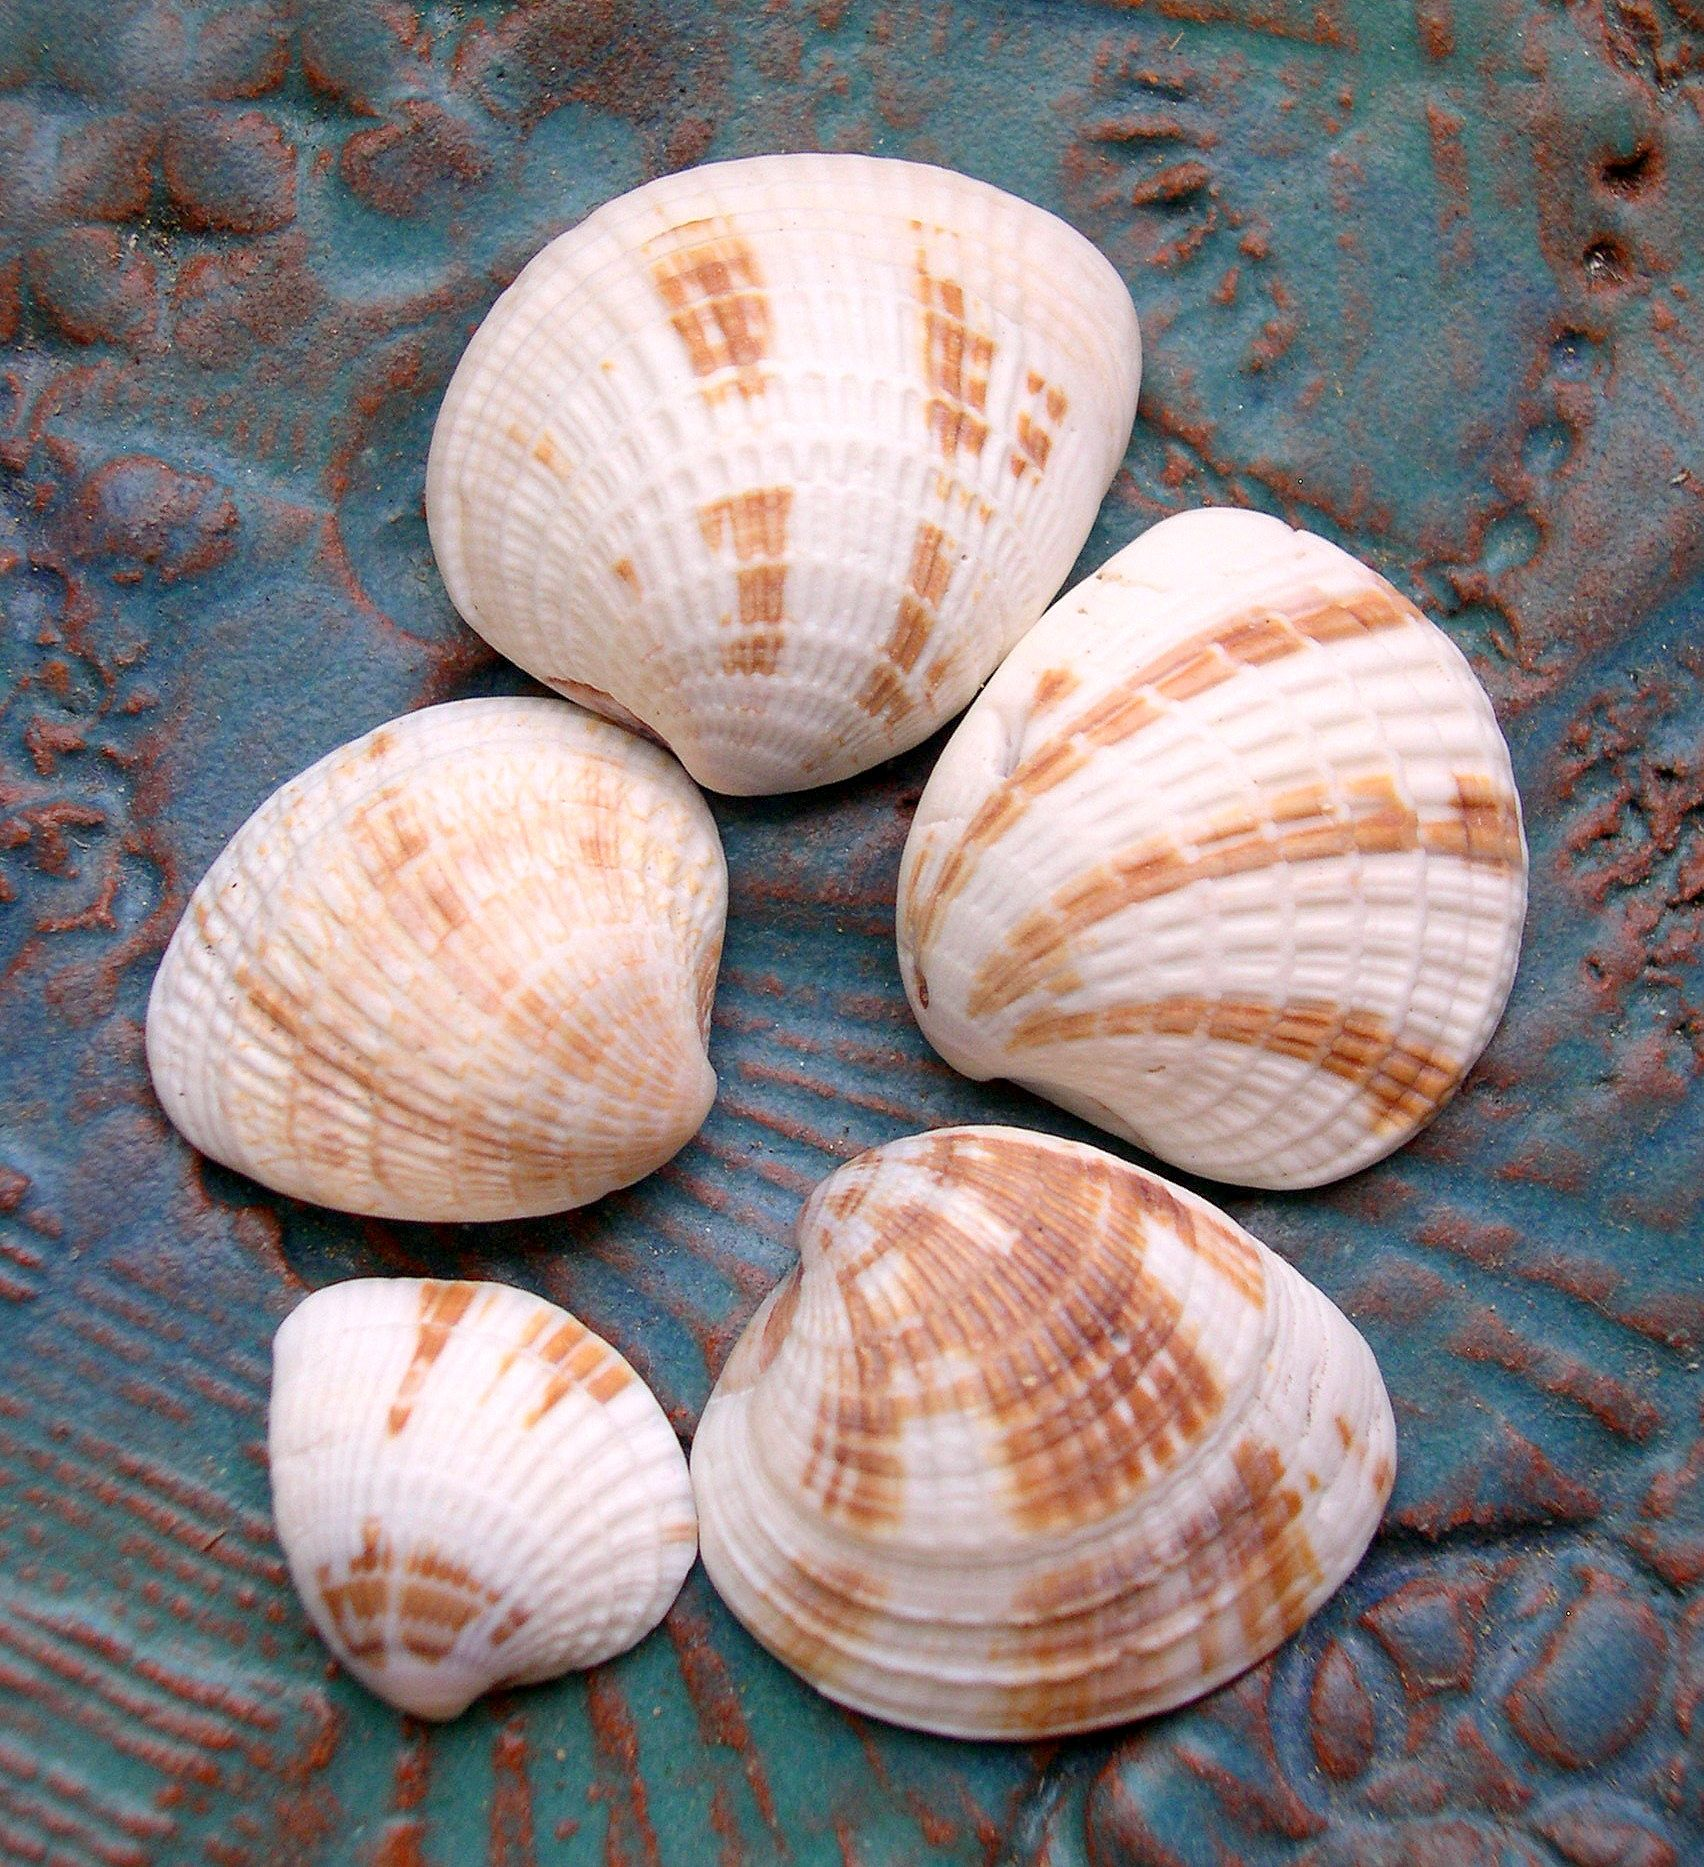 colorful pictures of seashells | Photos of the Cross-barred Venus Shell | Seashells by Millhill